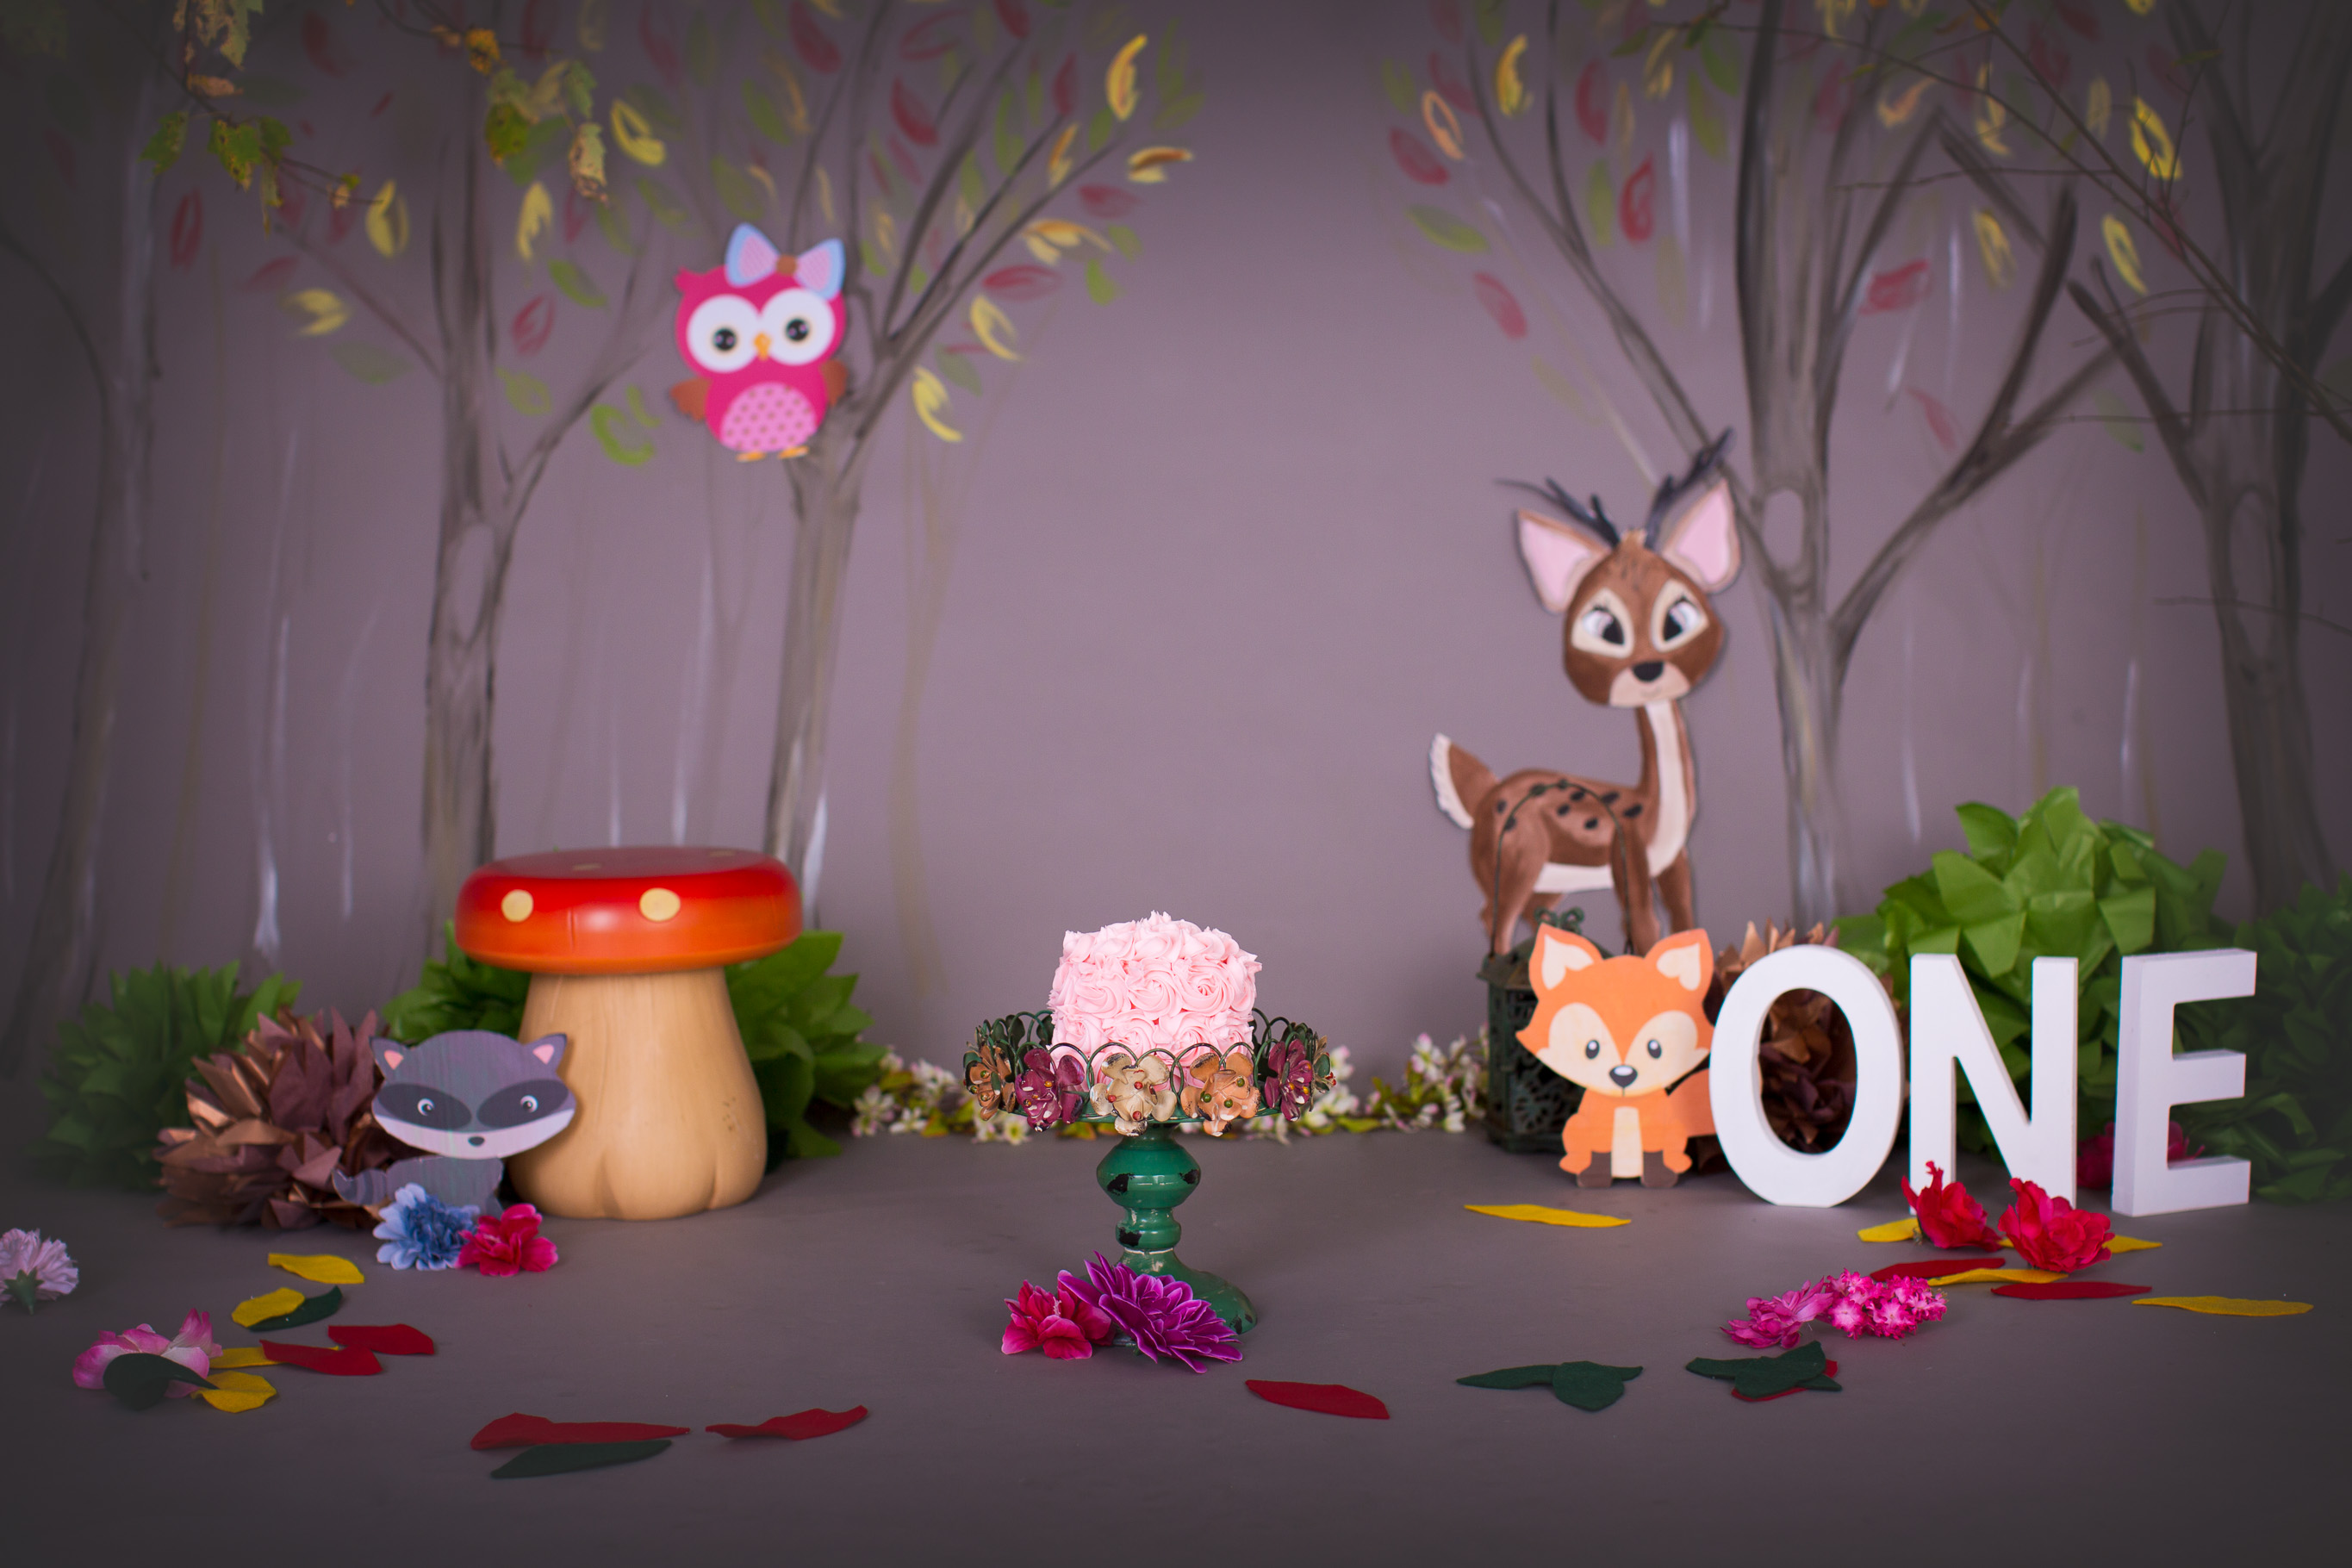 Image of Woodland cake smash set up with pink cake in the middle custom created by KseniaP.Photography